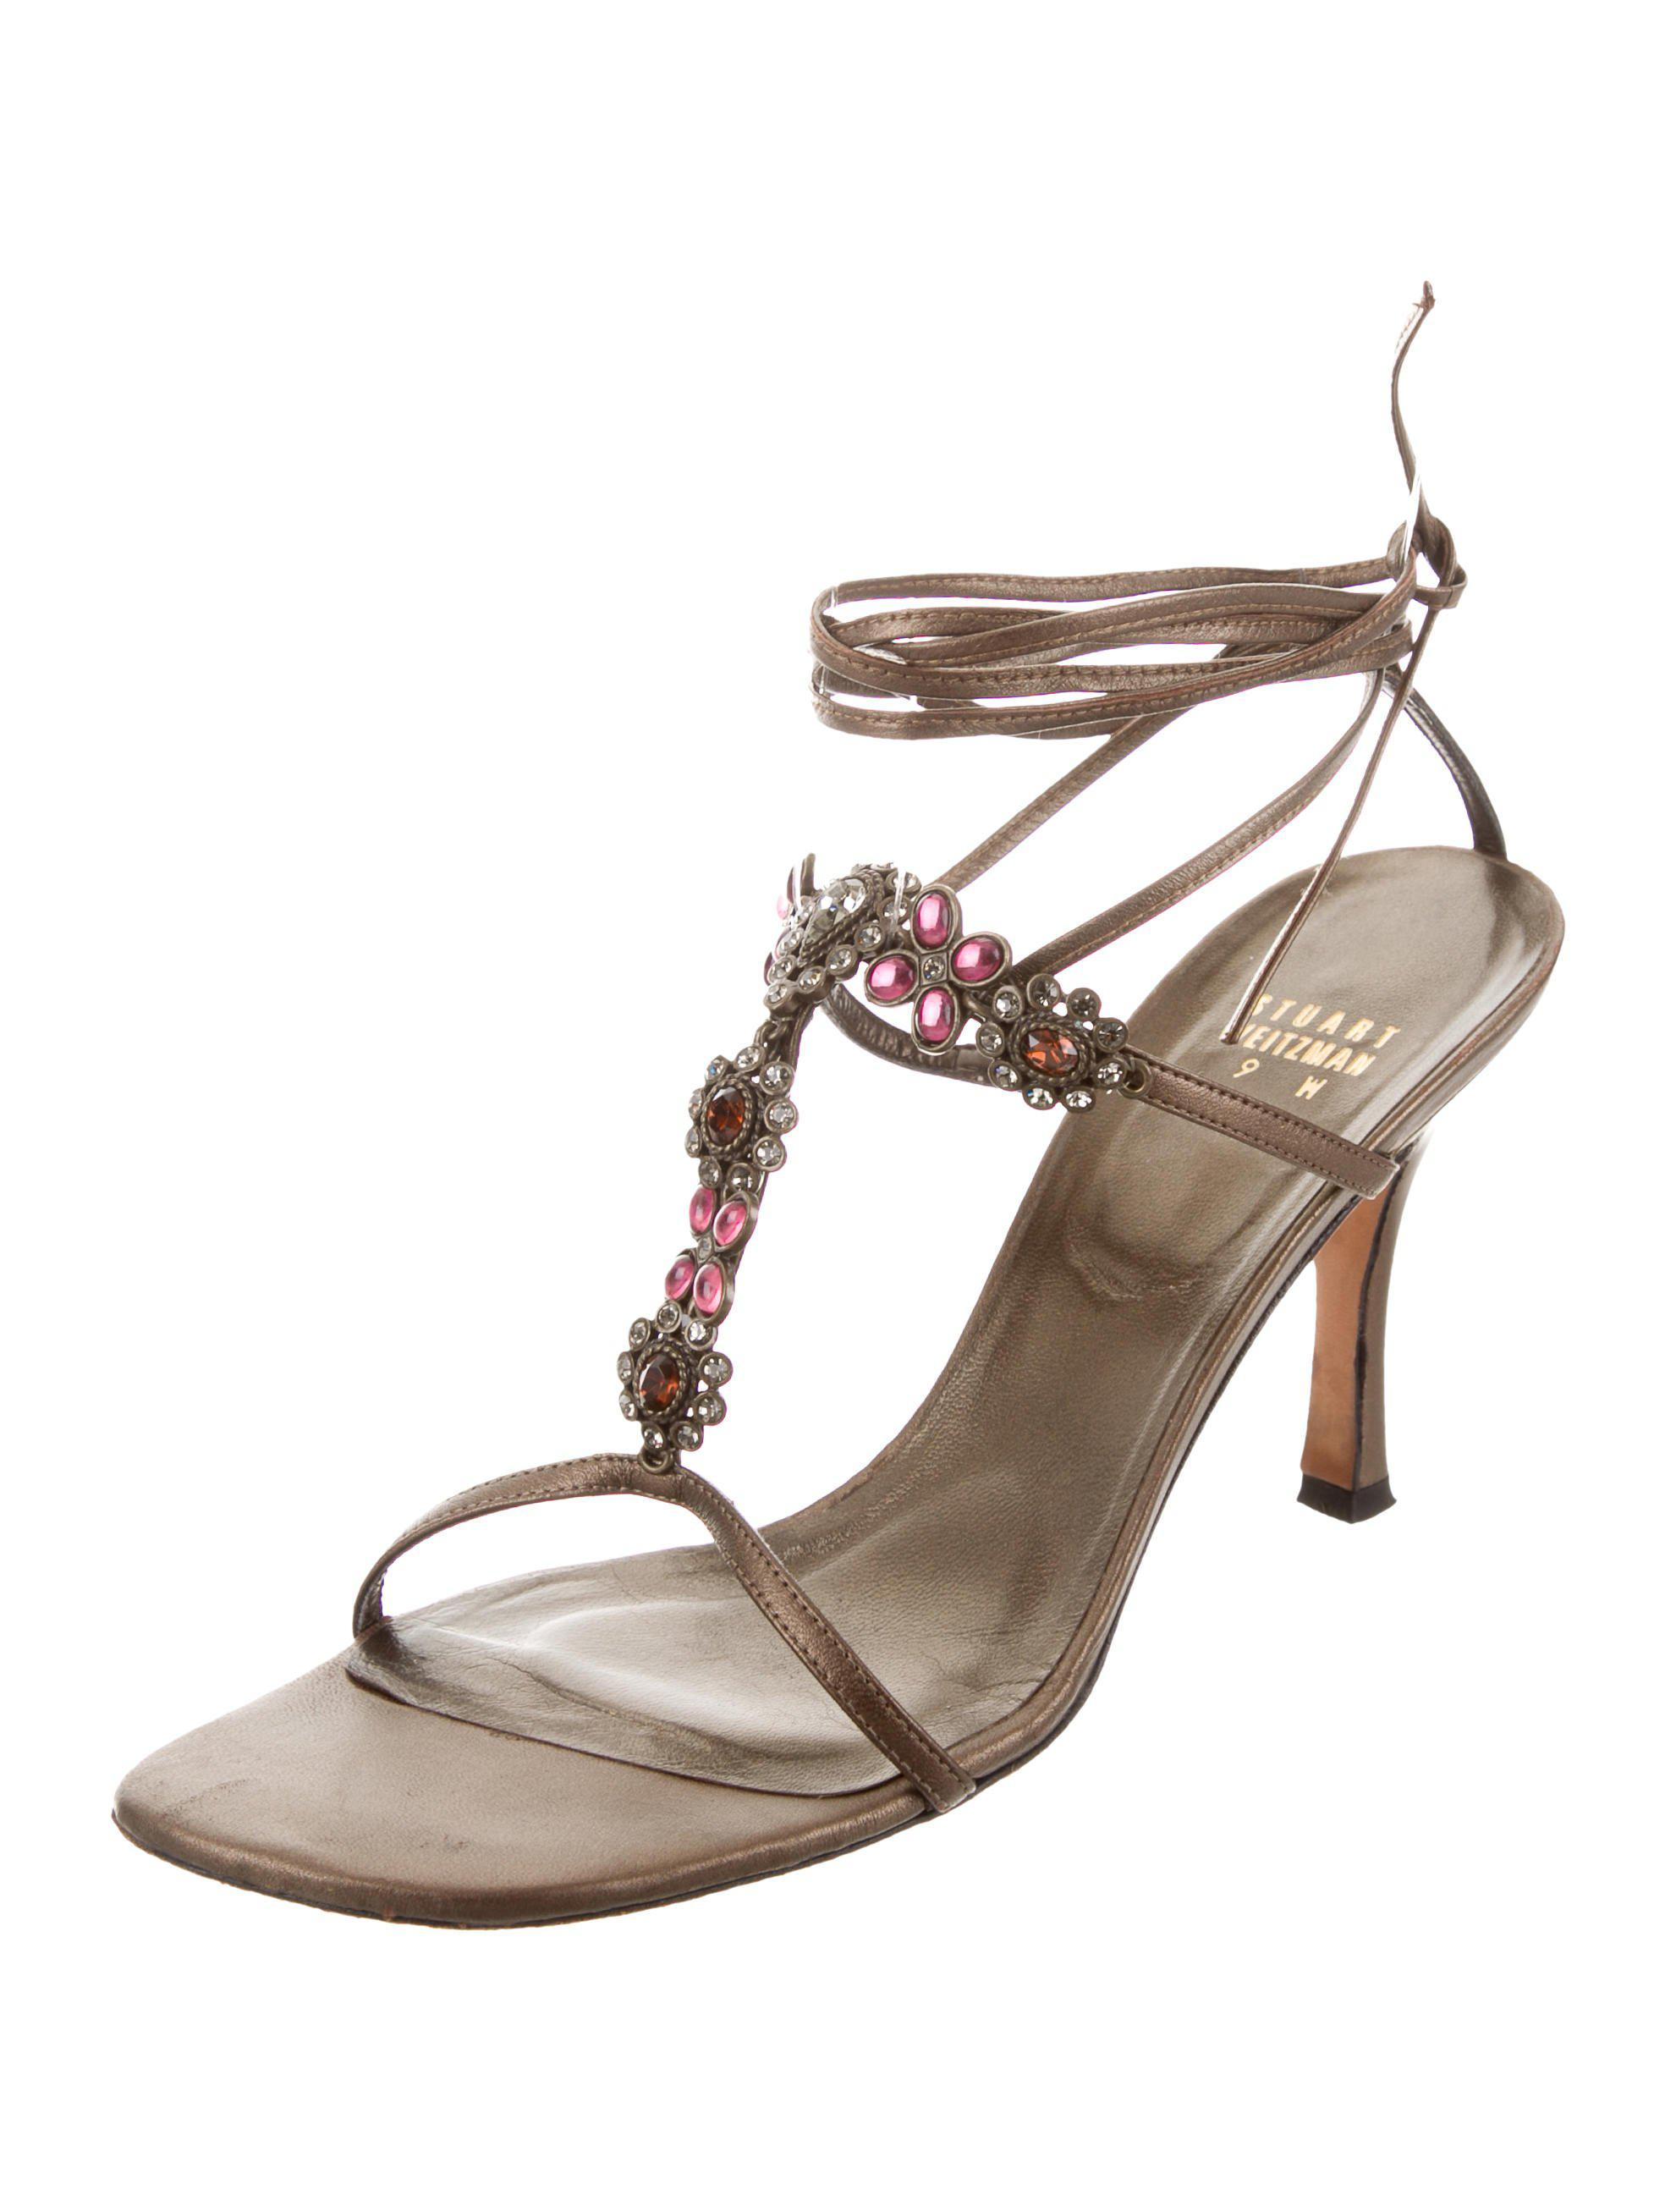 buy cheap tumblr Stuart Weitzman Embellished Wrap-Around Sandals sale collections for cheap buy cheap for sale ncEoFILds3